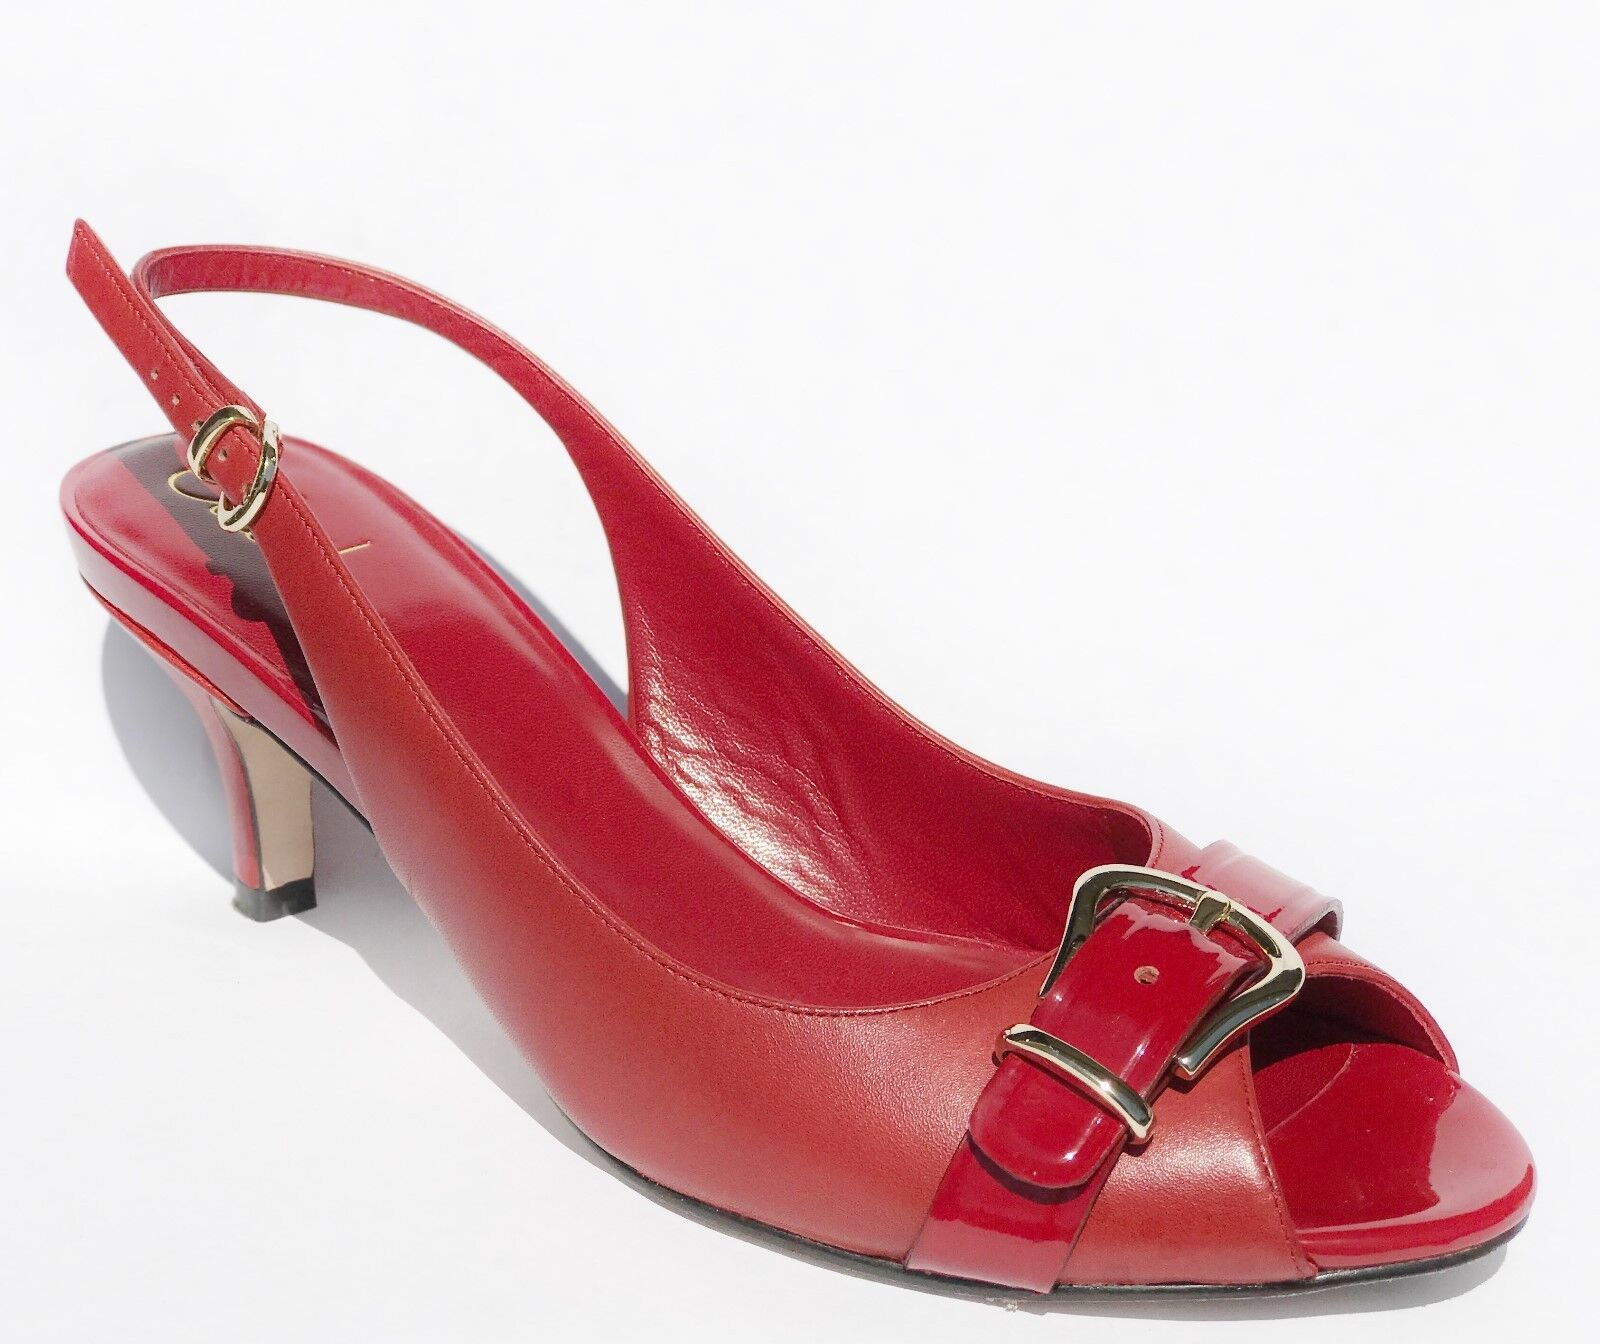 180 Cole Haan Air Lainey OT OT OT Slingback Leather schuhe damen rot 9 fd9021